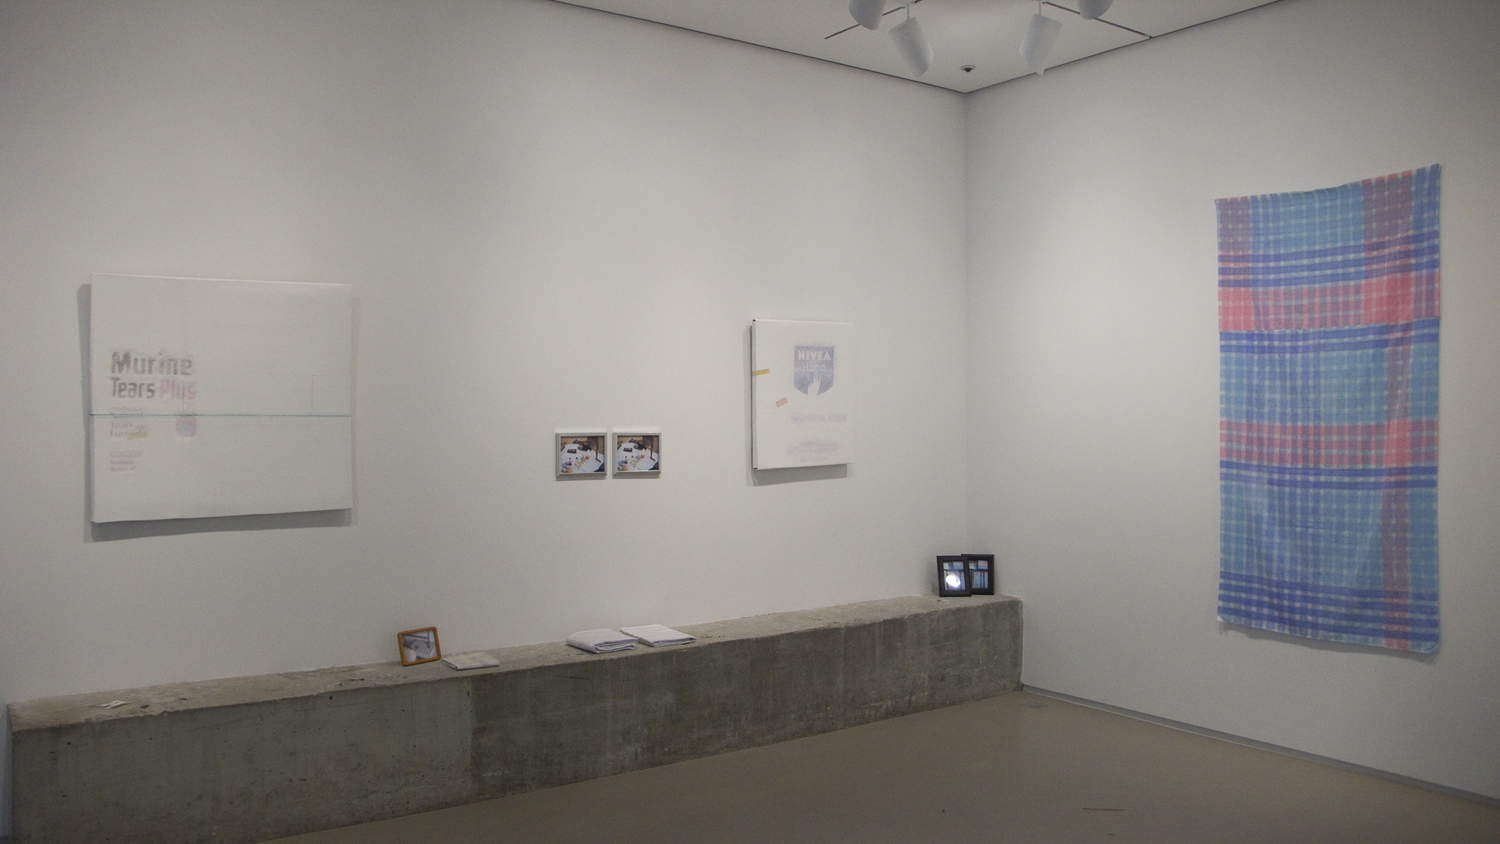 Lee Kit   1,2,3,4...  , 2011 Installation view at Lombard Freid Gallery, New York